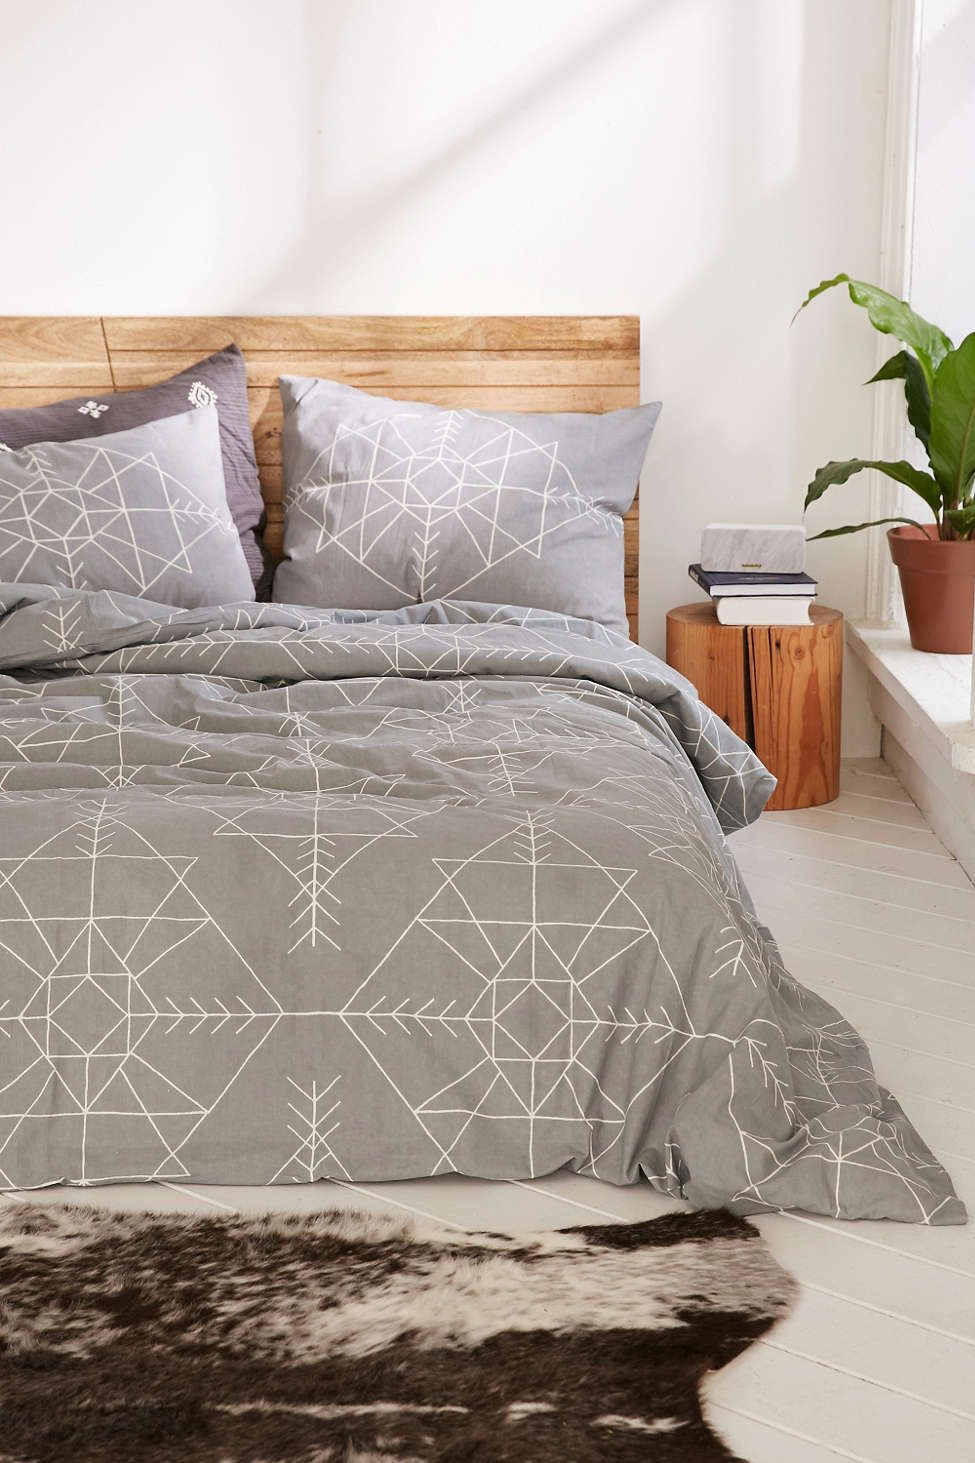 Magical Thinking Archery Arrows Duvet Cover Master Bedroom